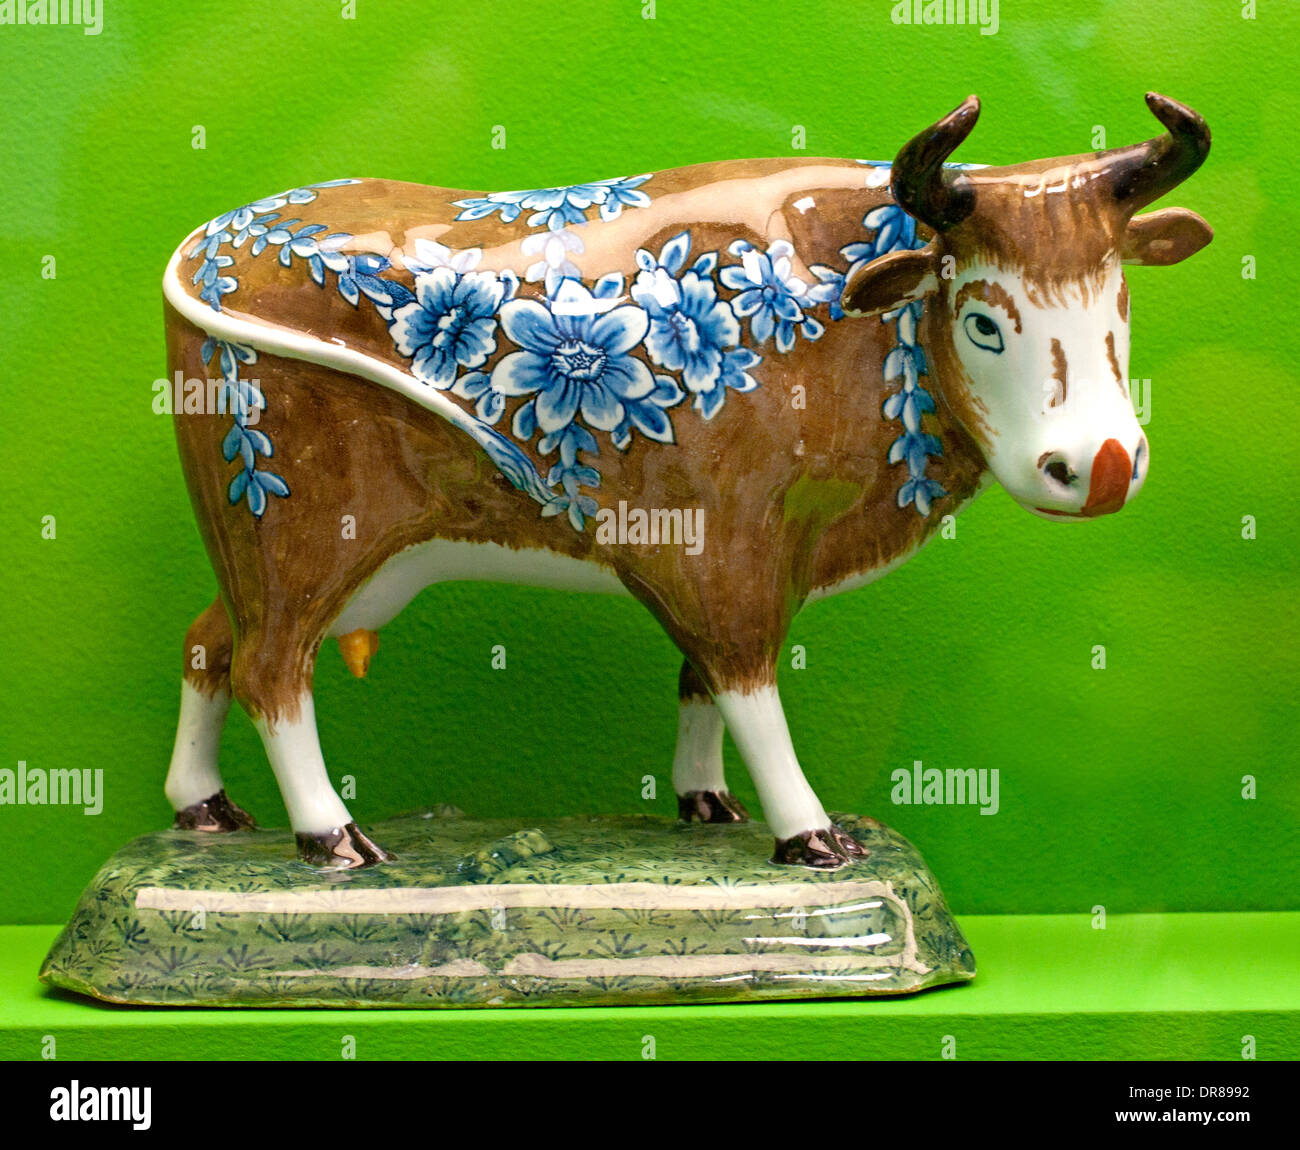 Hand Painted Holland Style Ceramic Cows